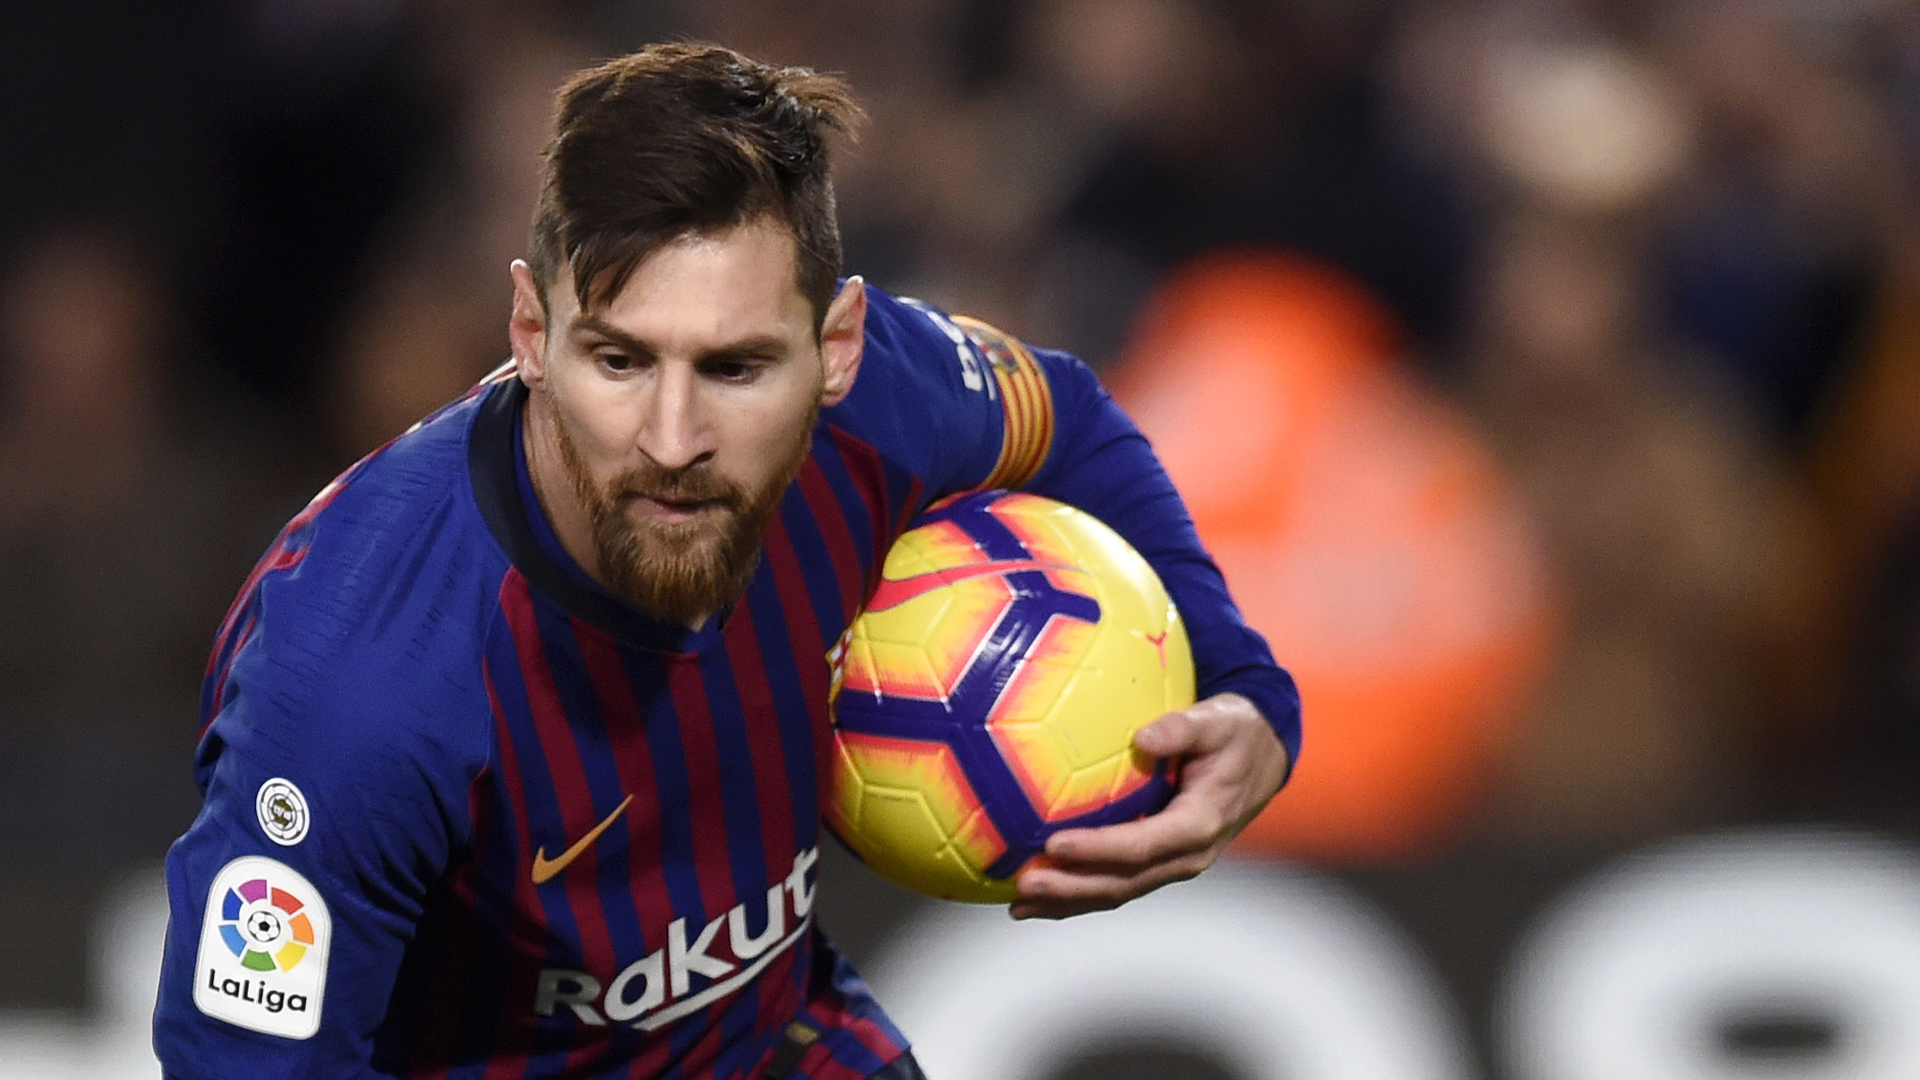 Barcelona coach Valverde confident Messi injury not serious